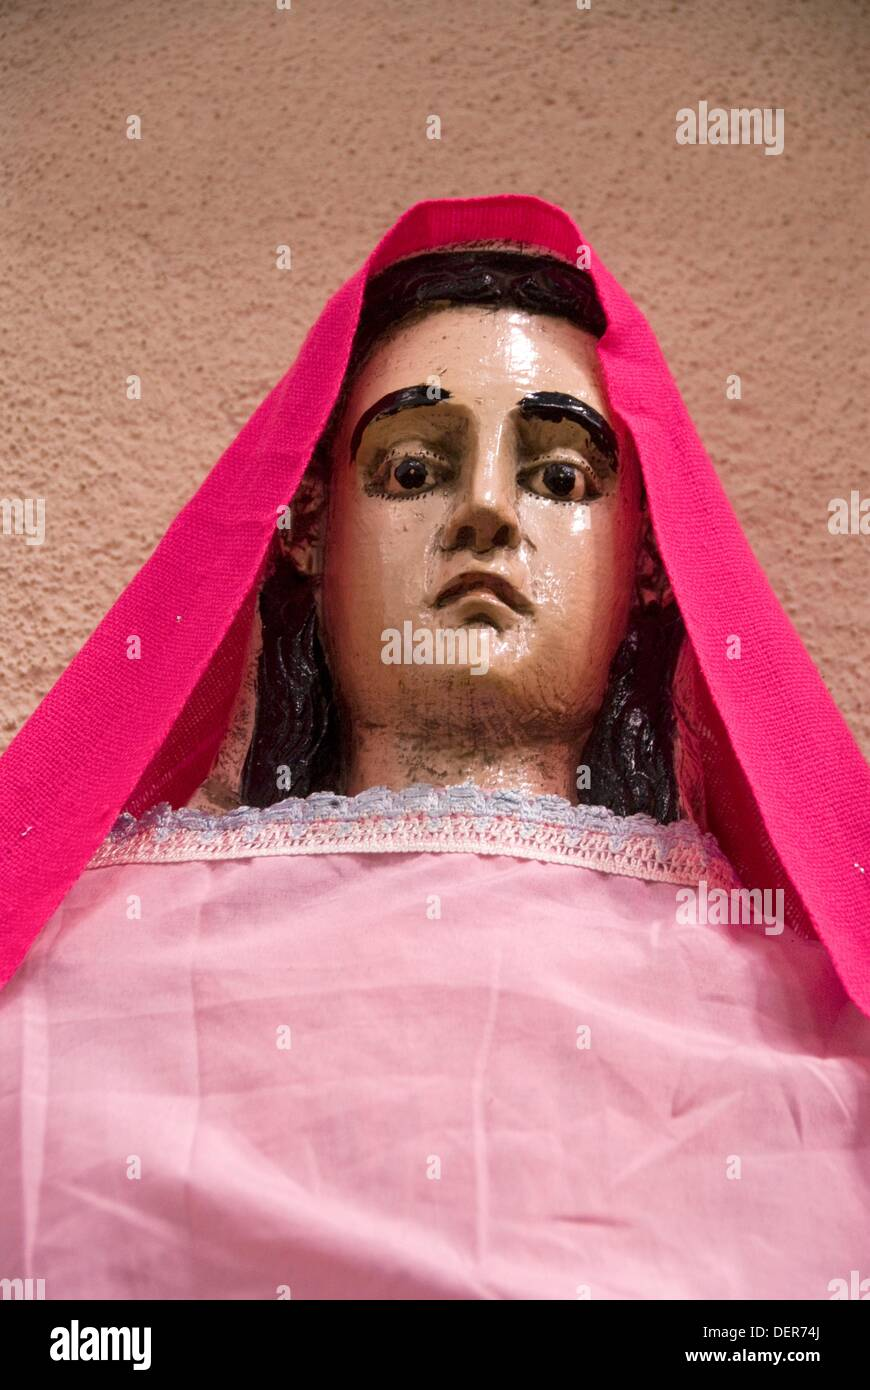 c26a51c3 Statues of saint dressed in indigenous attire at the Catholic Church ...